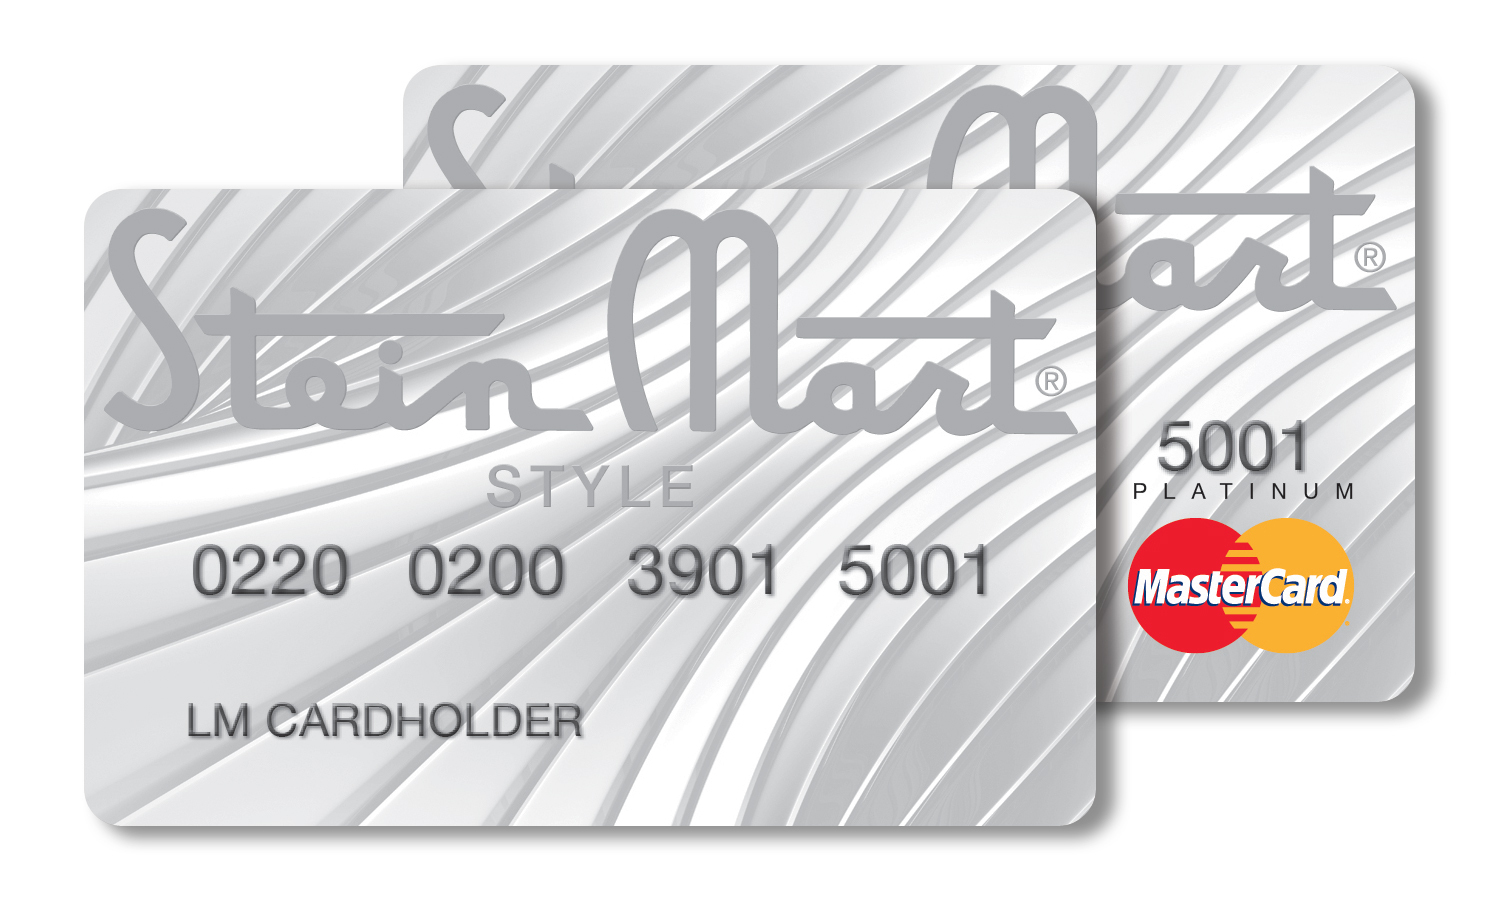 Synchrony Financial And Stein Mart Extend Consumer Credit Card Program  Agreement | Business Wire